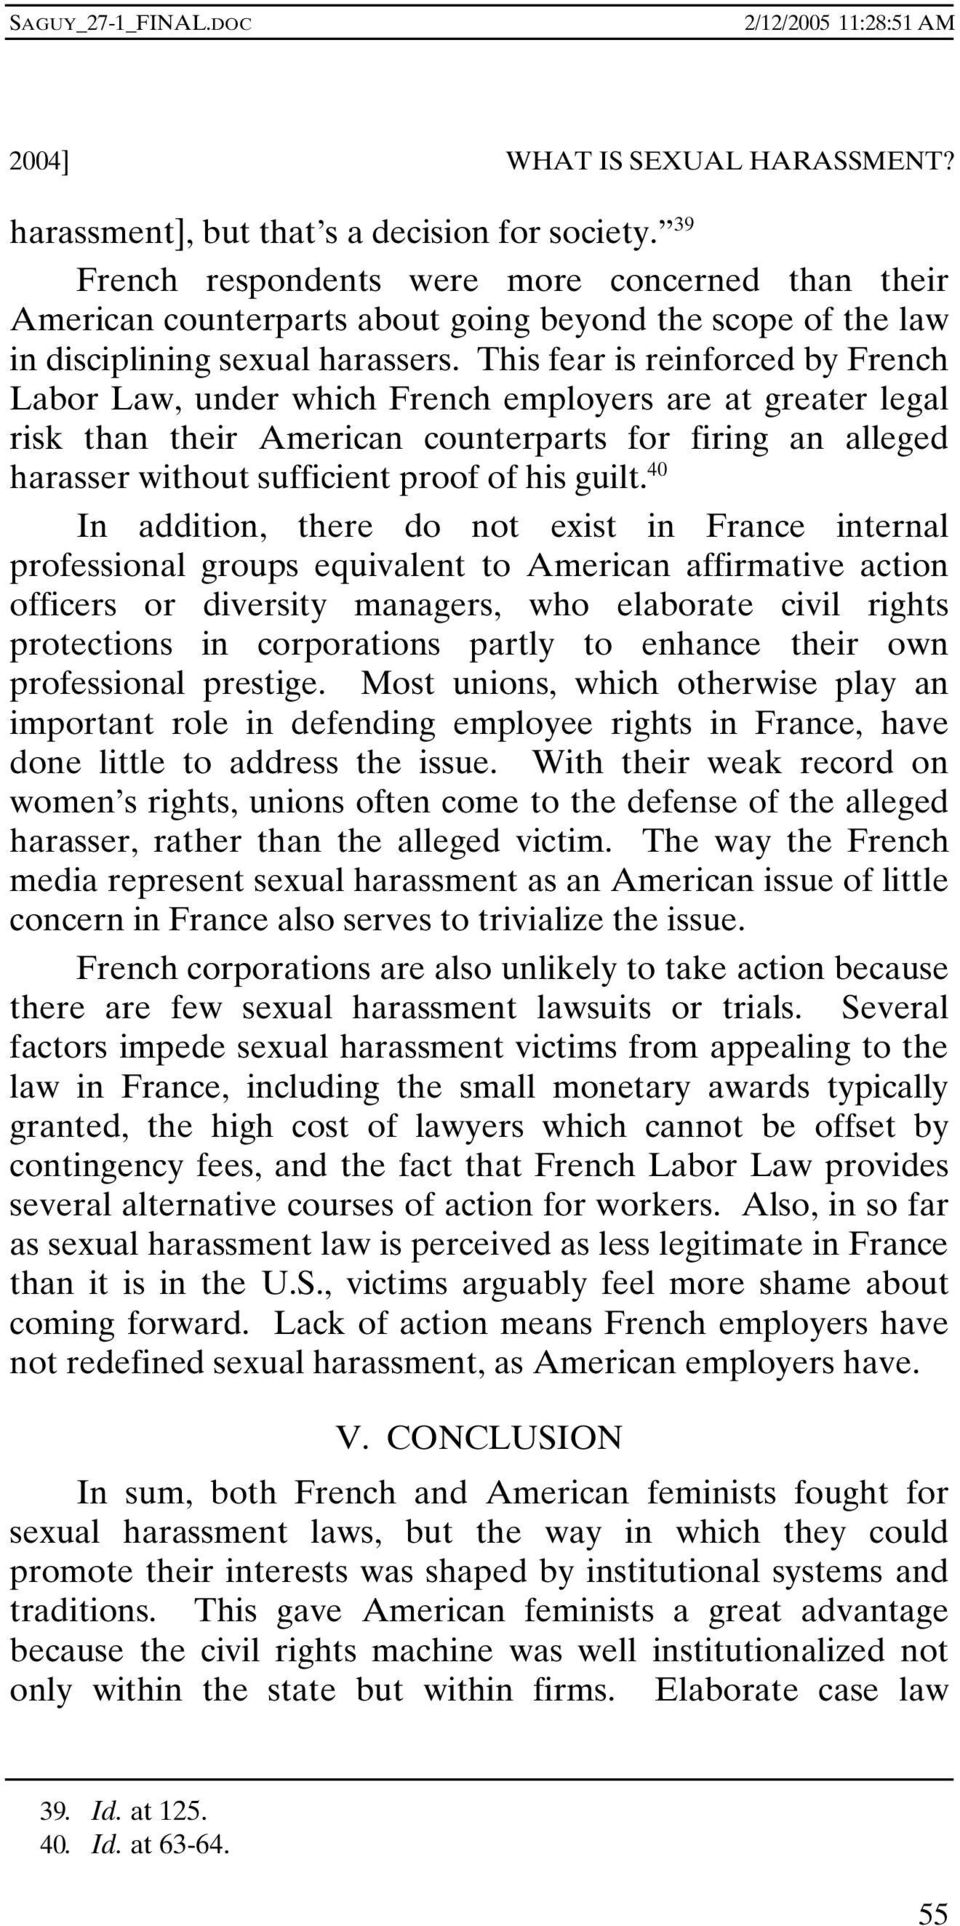 This fear is reinforced by French Labor Law, under which French employers are at greater legal risk than their American counterparts for firing an alleged harasser without sufficient proof of his